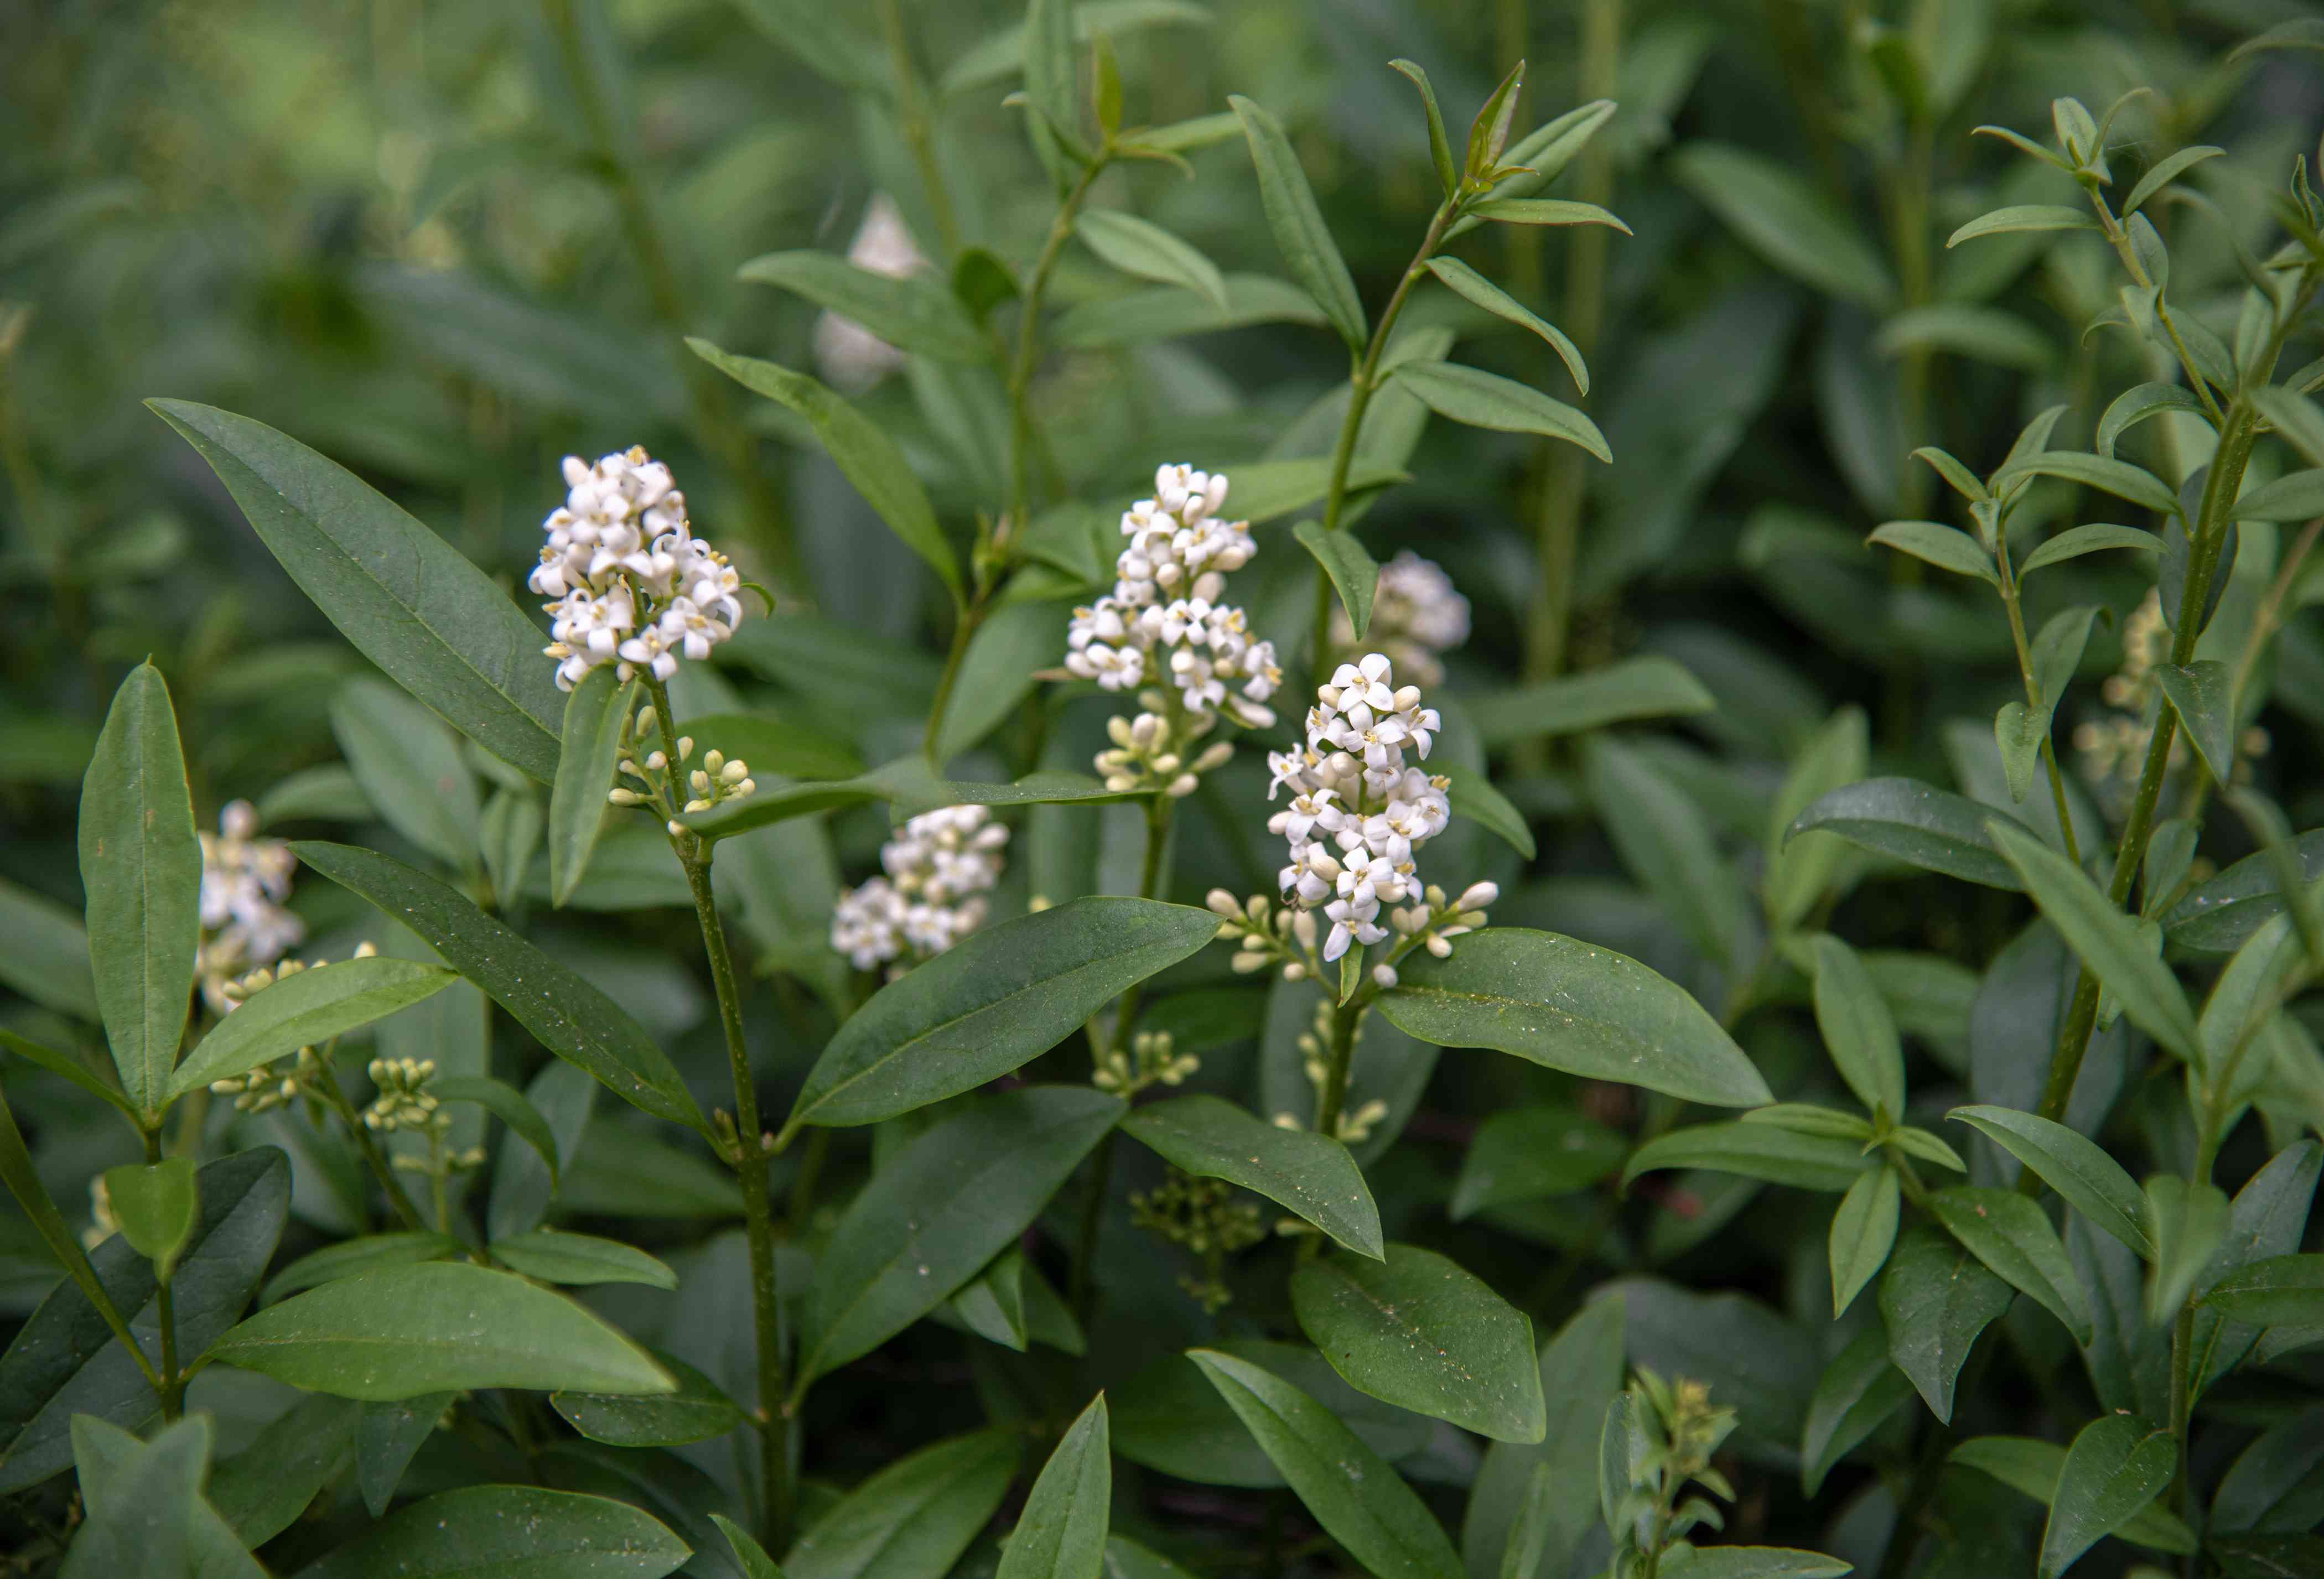 Privet stems with oval-shaped leaves and small white flower panicles